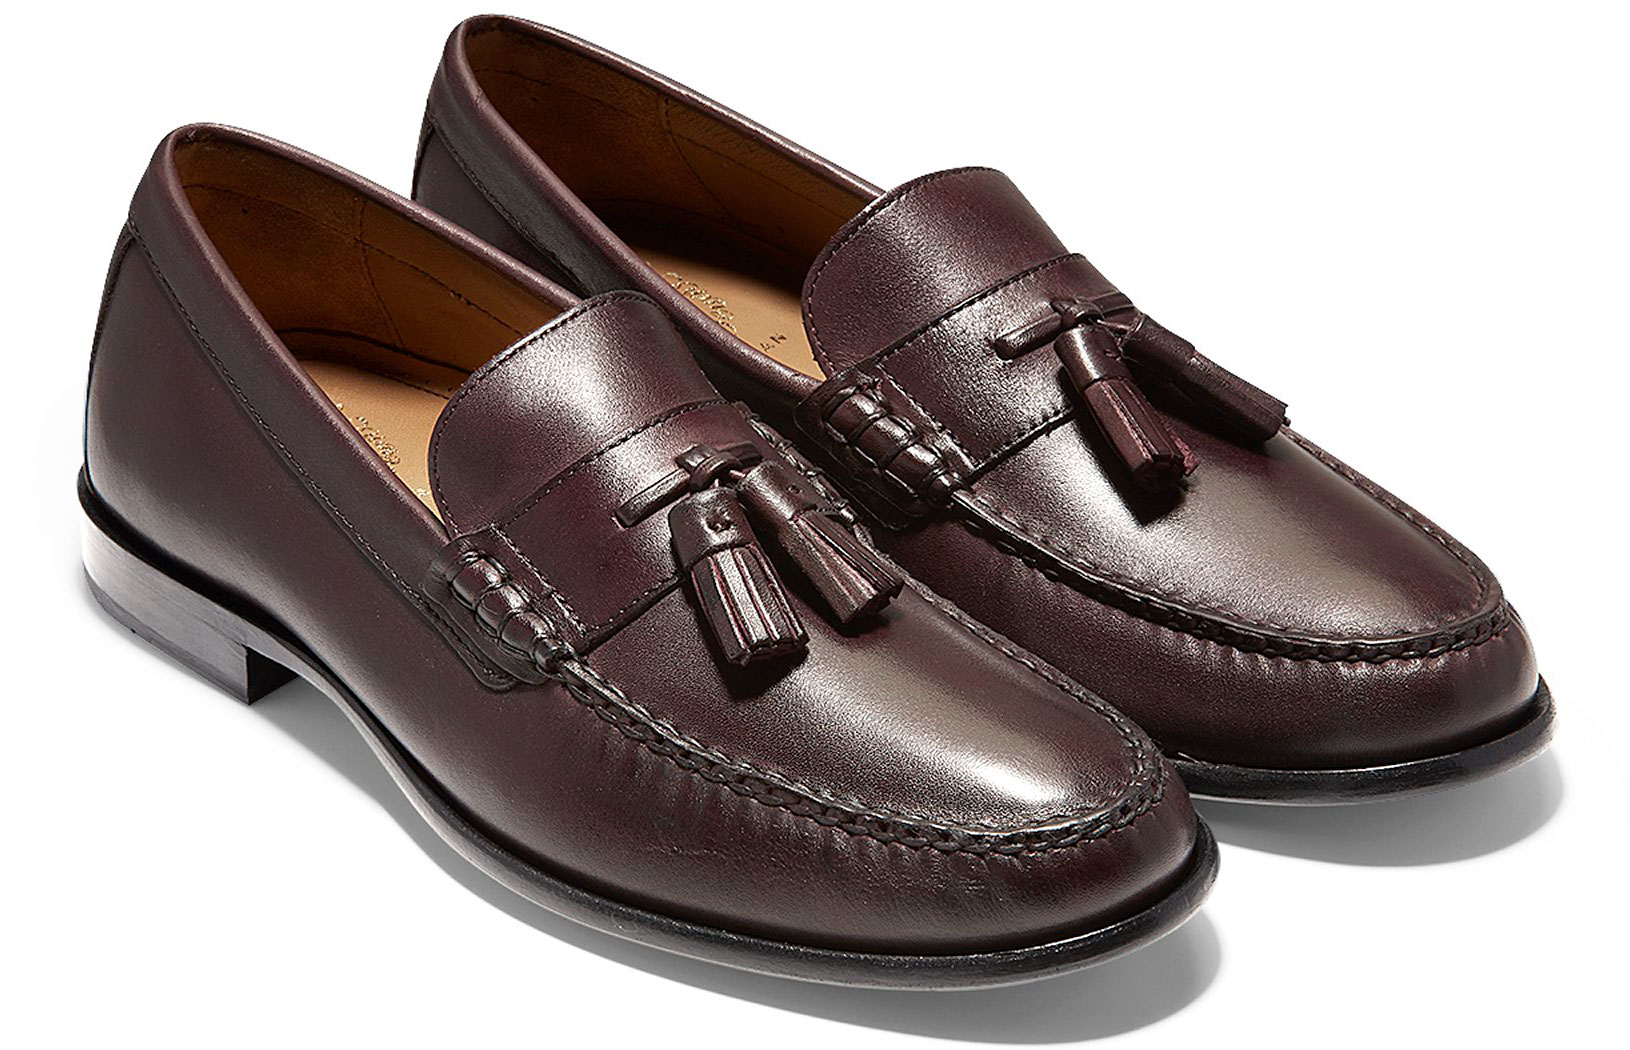 ab0b00c3f75 Cole Haan Men s Pinch Handsewn Tassel Loafer C27965 Burgundy Handstain-Black.  Tap to expand